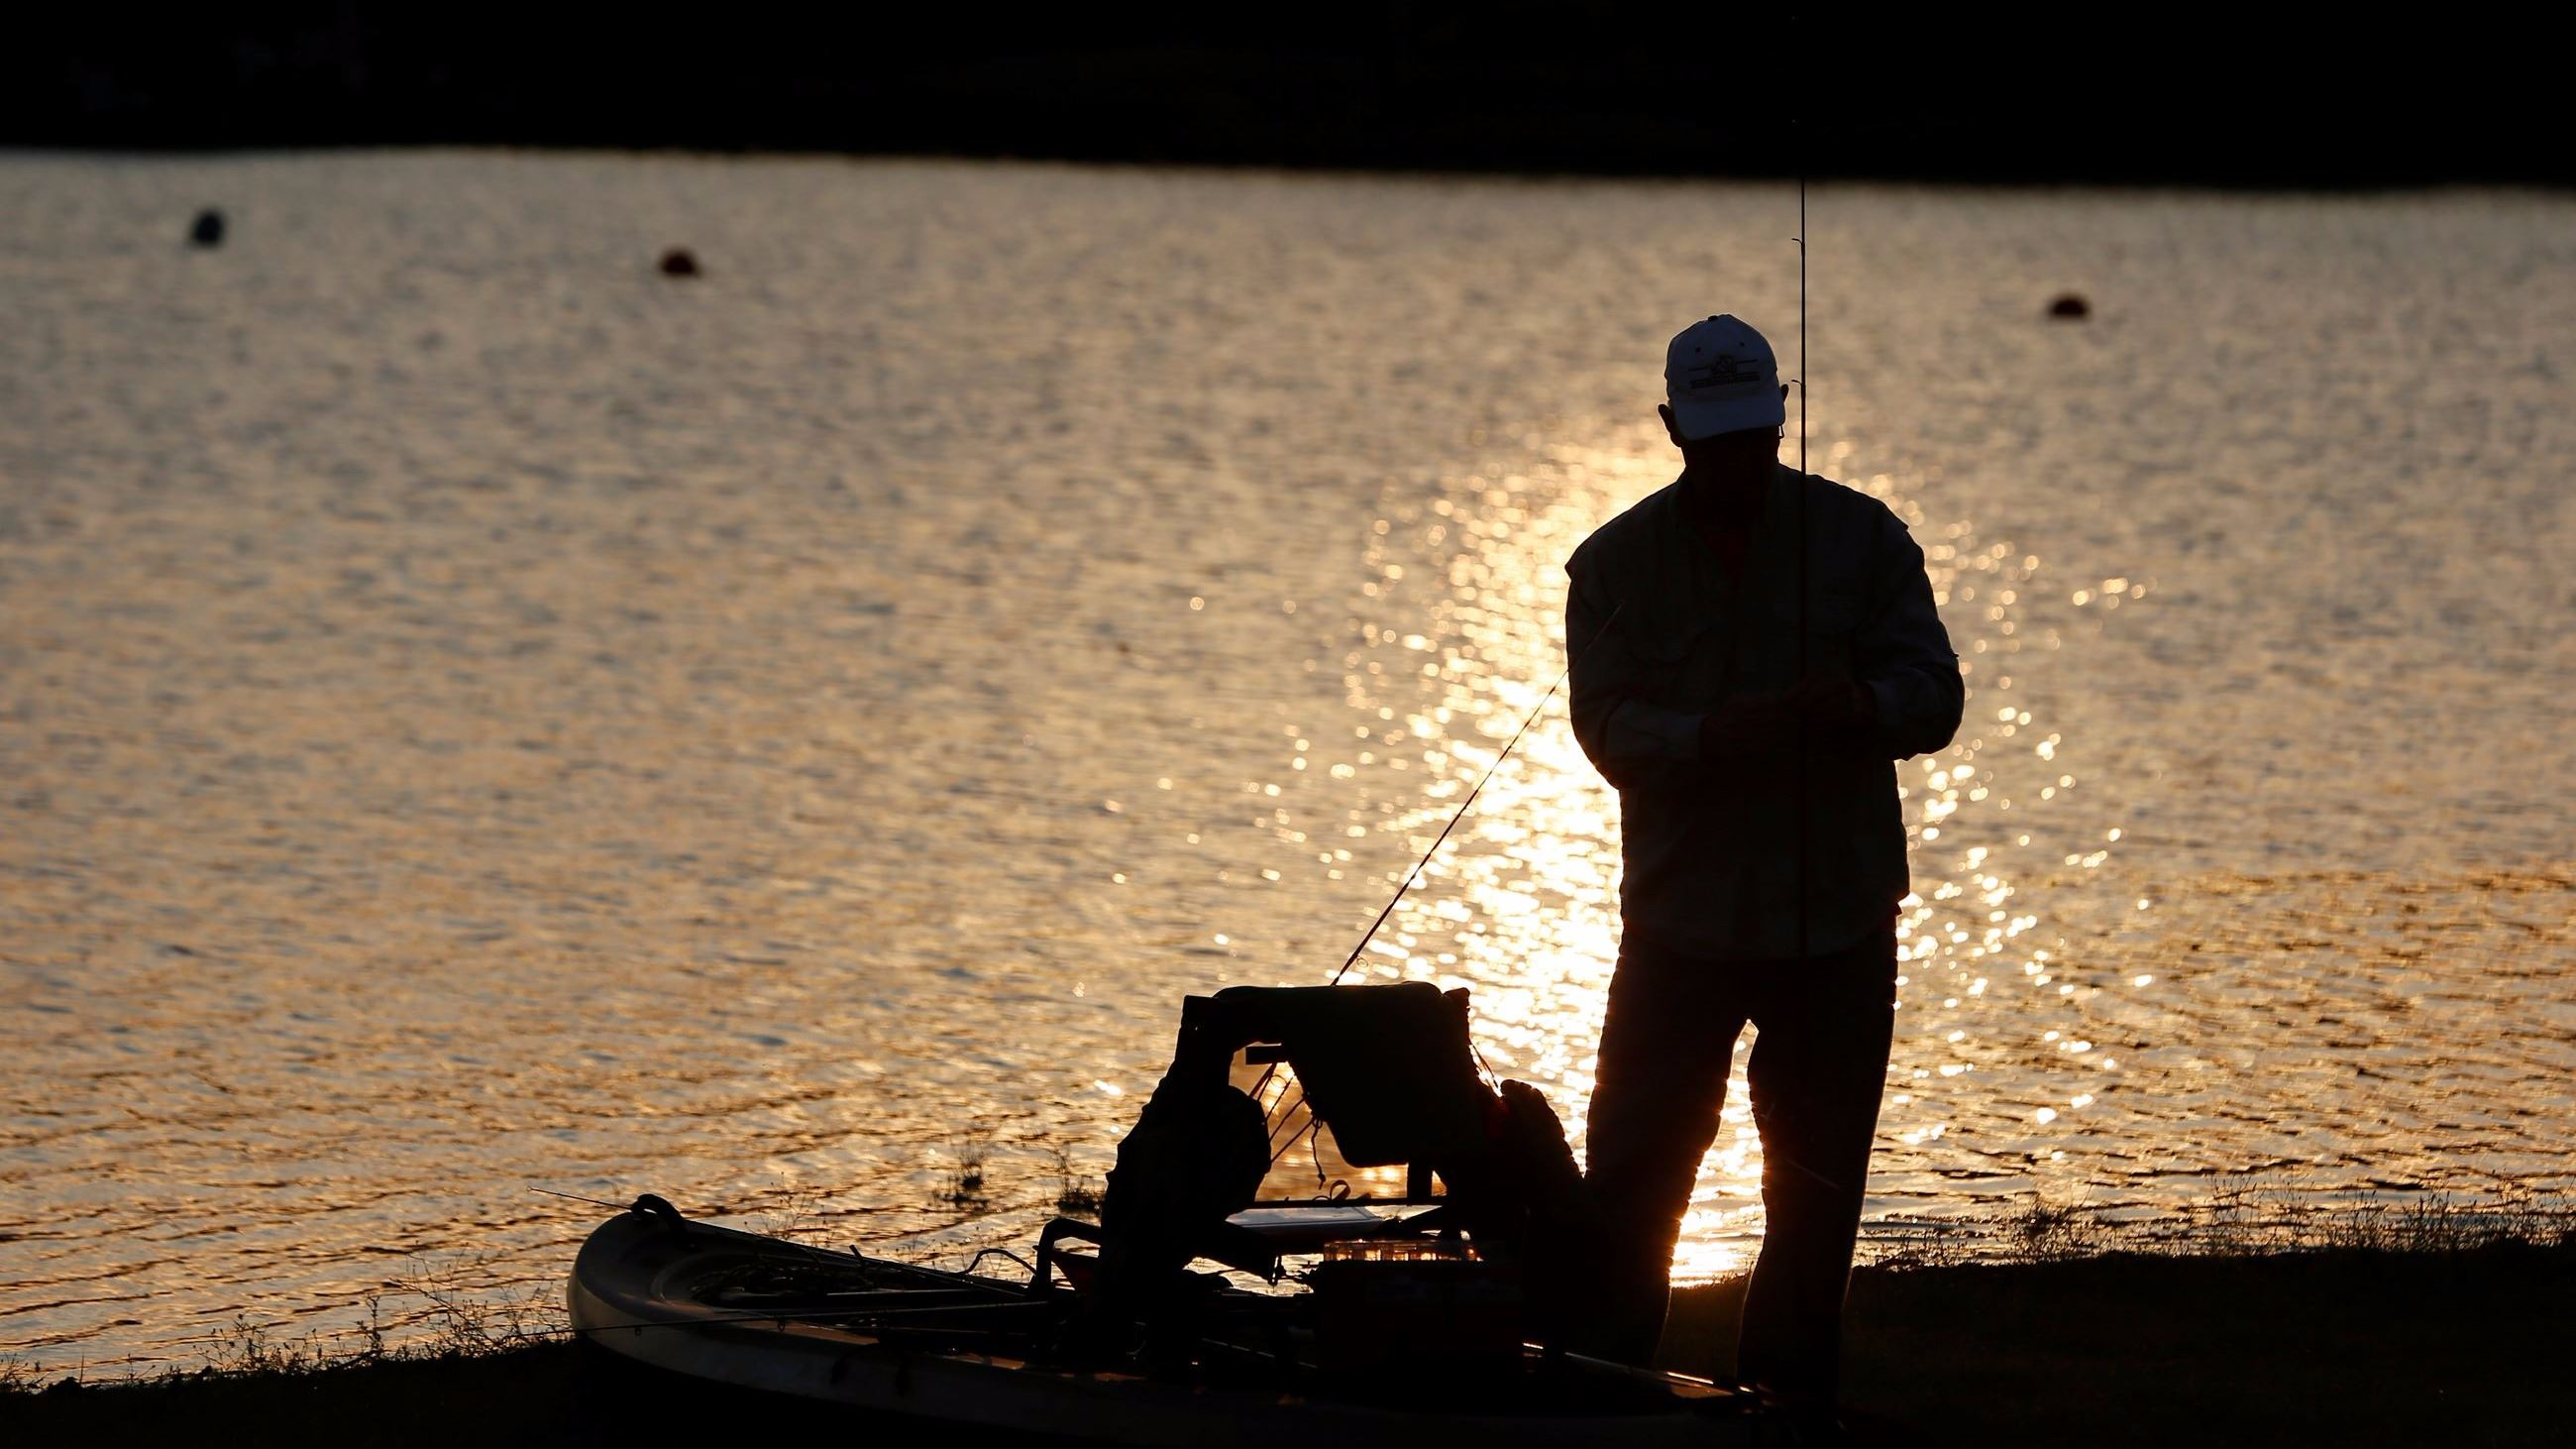 Fishing at Dusk in City Park